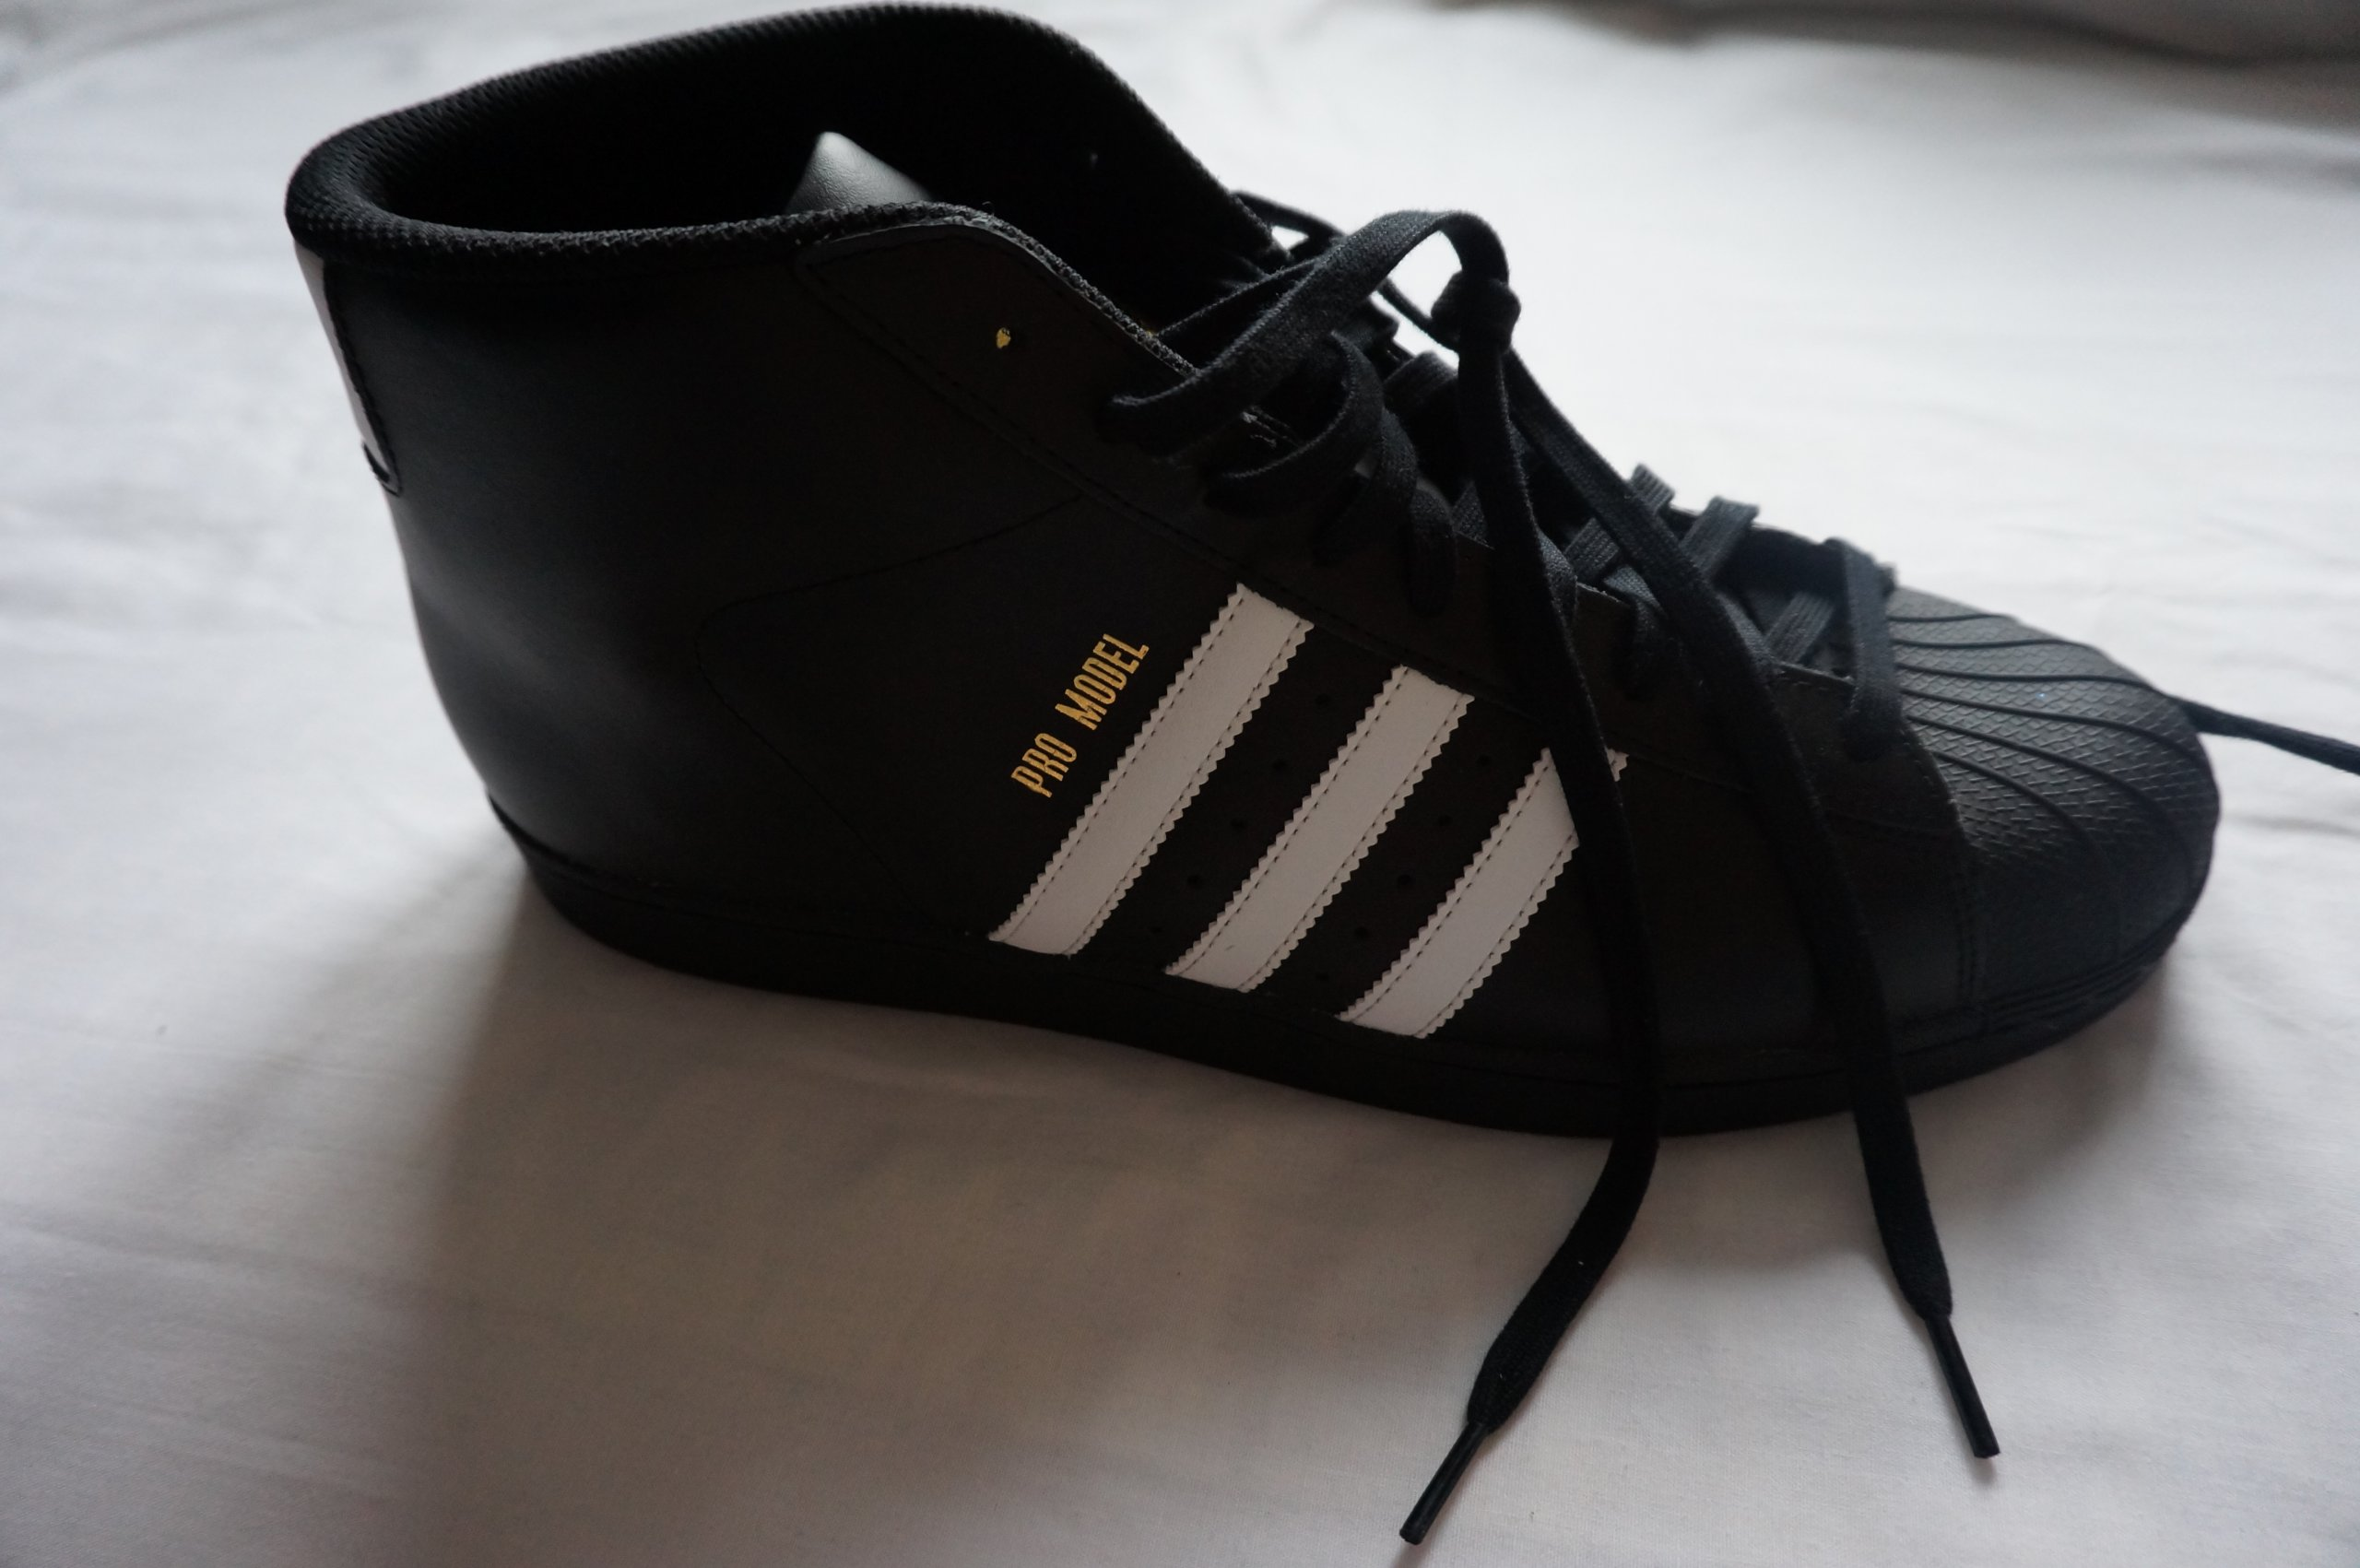 BUTY ADIDAS PRO PLAY 2 S81722 r. 41 13 47 13